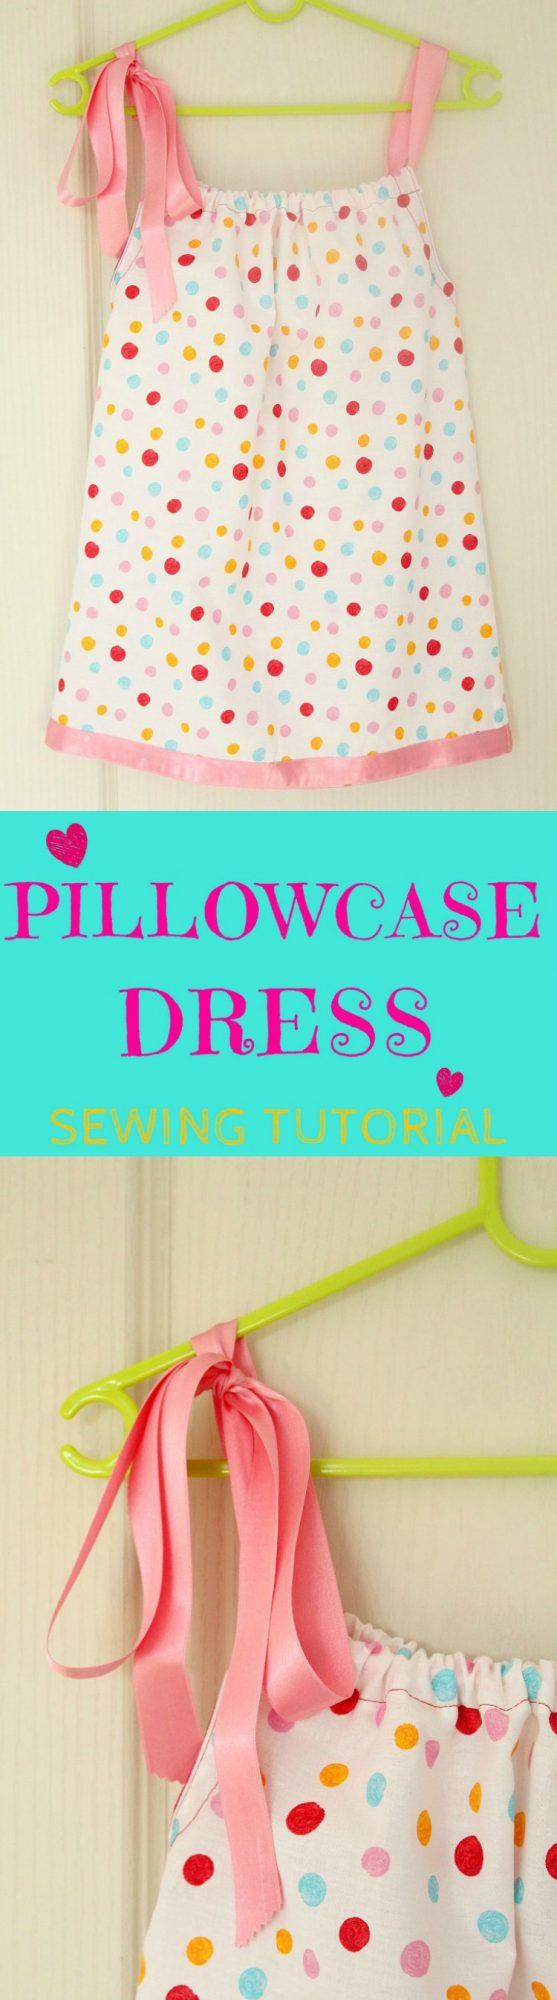 Pillowcase dress tutorial